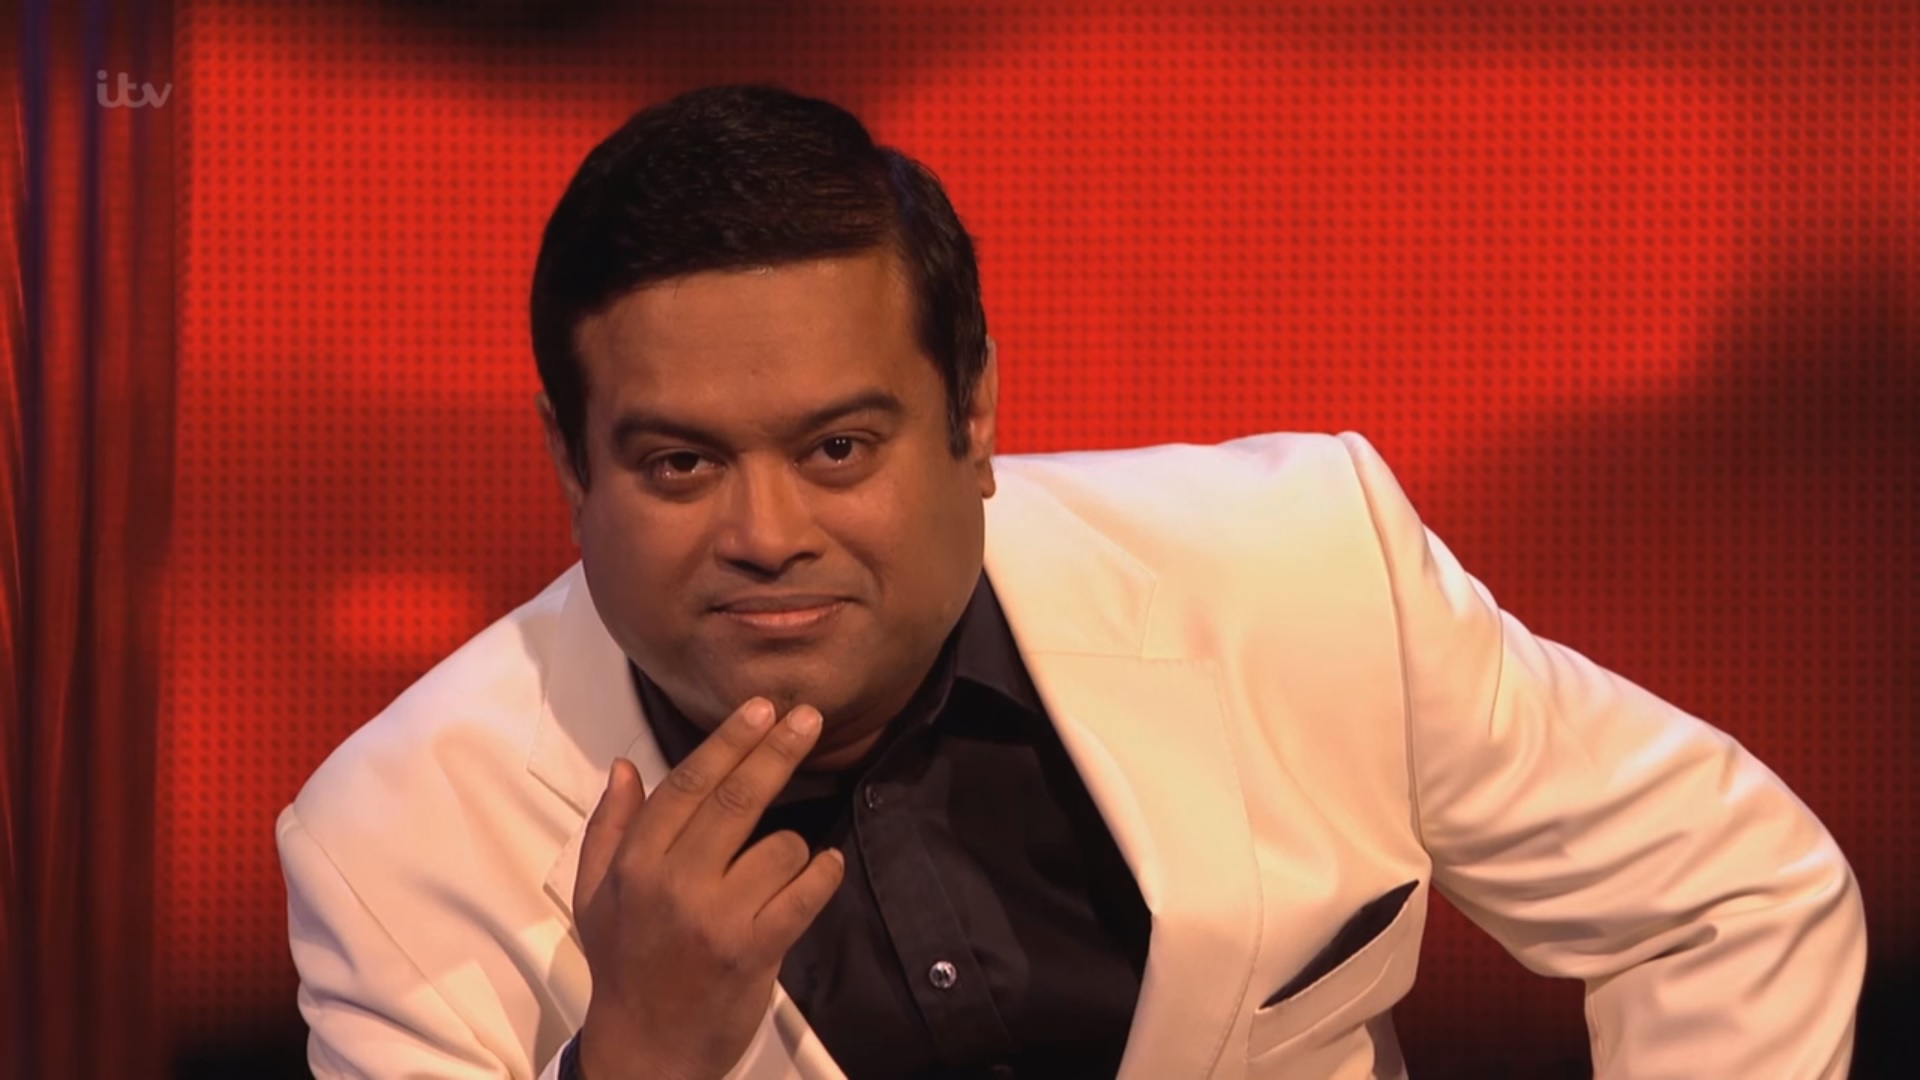 The Chase Star Paul Sinha Marries His Long Term Partner Olly